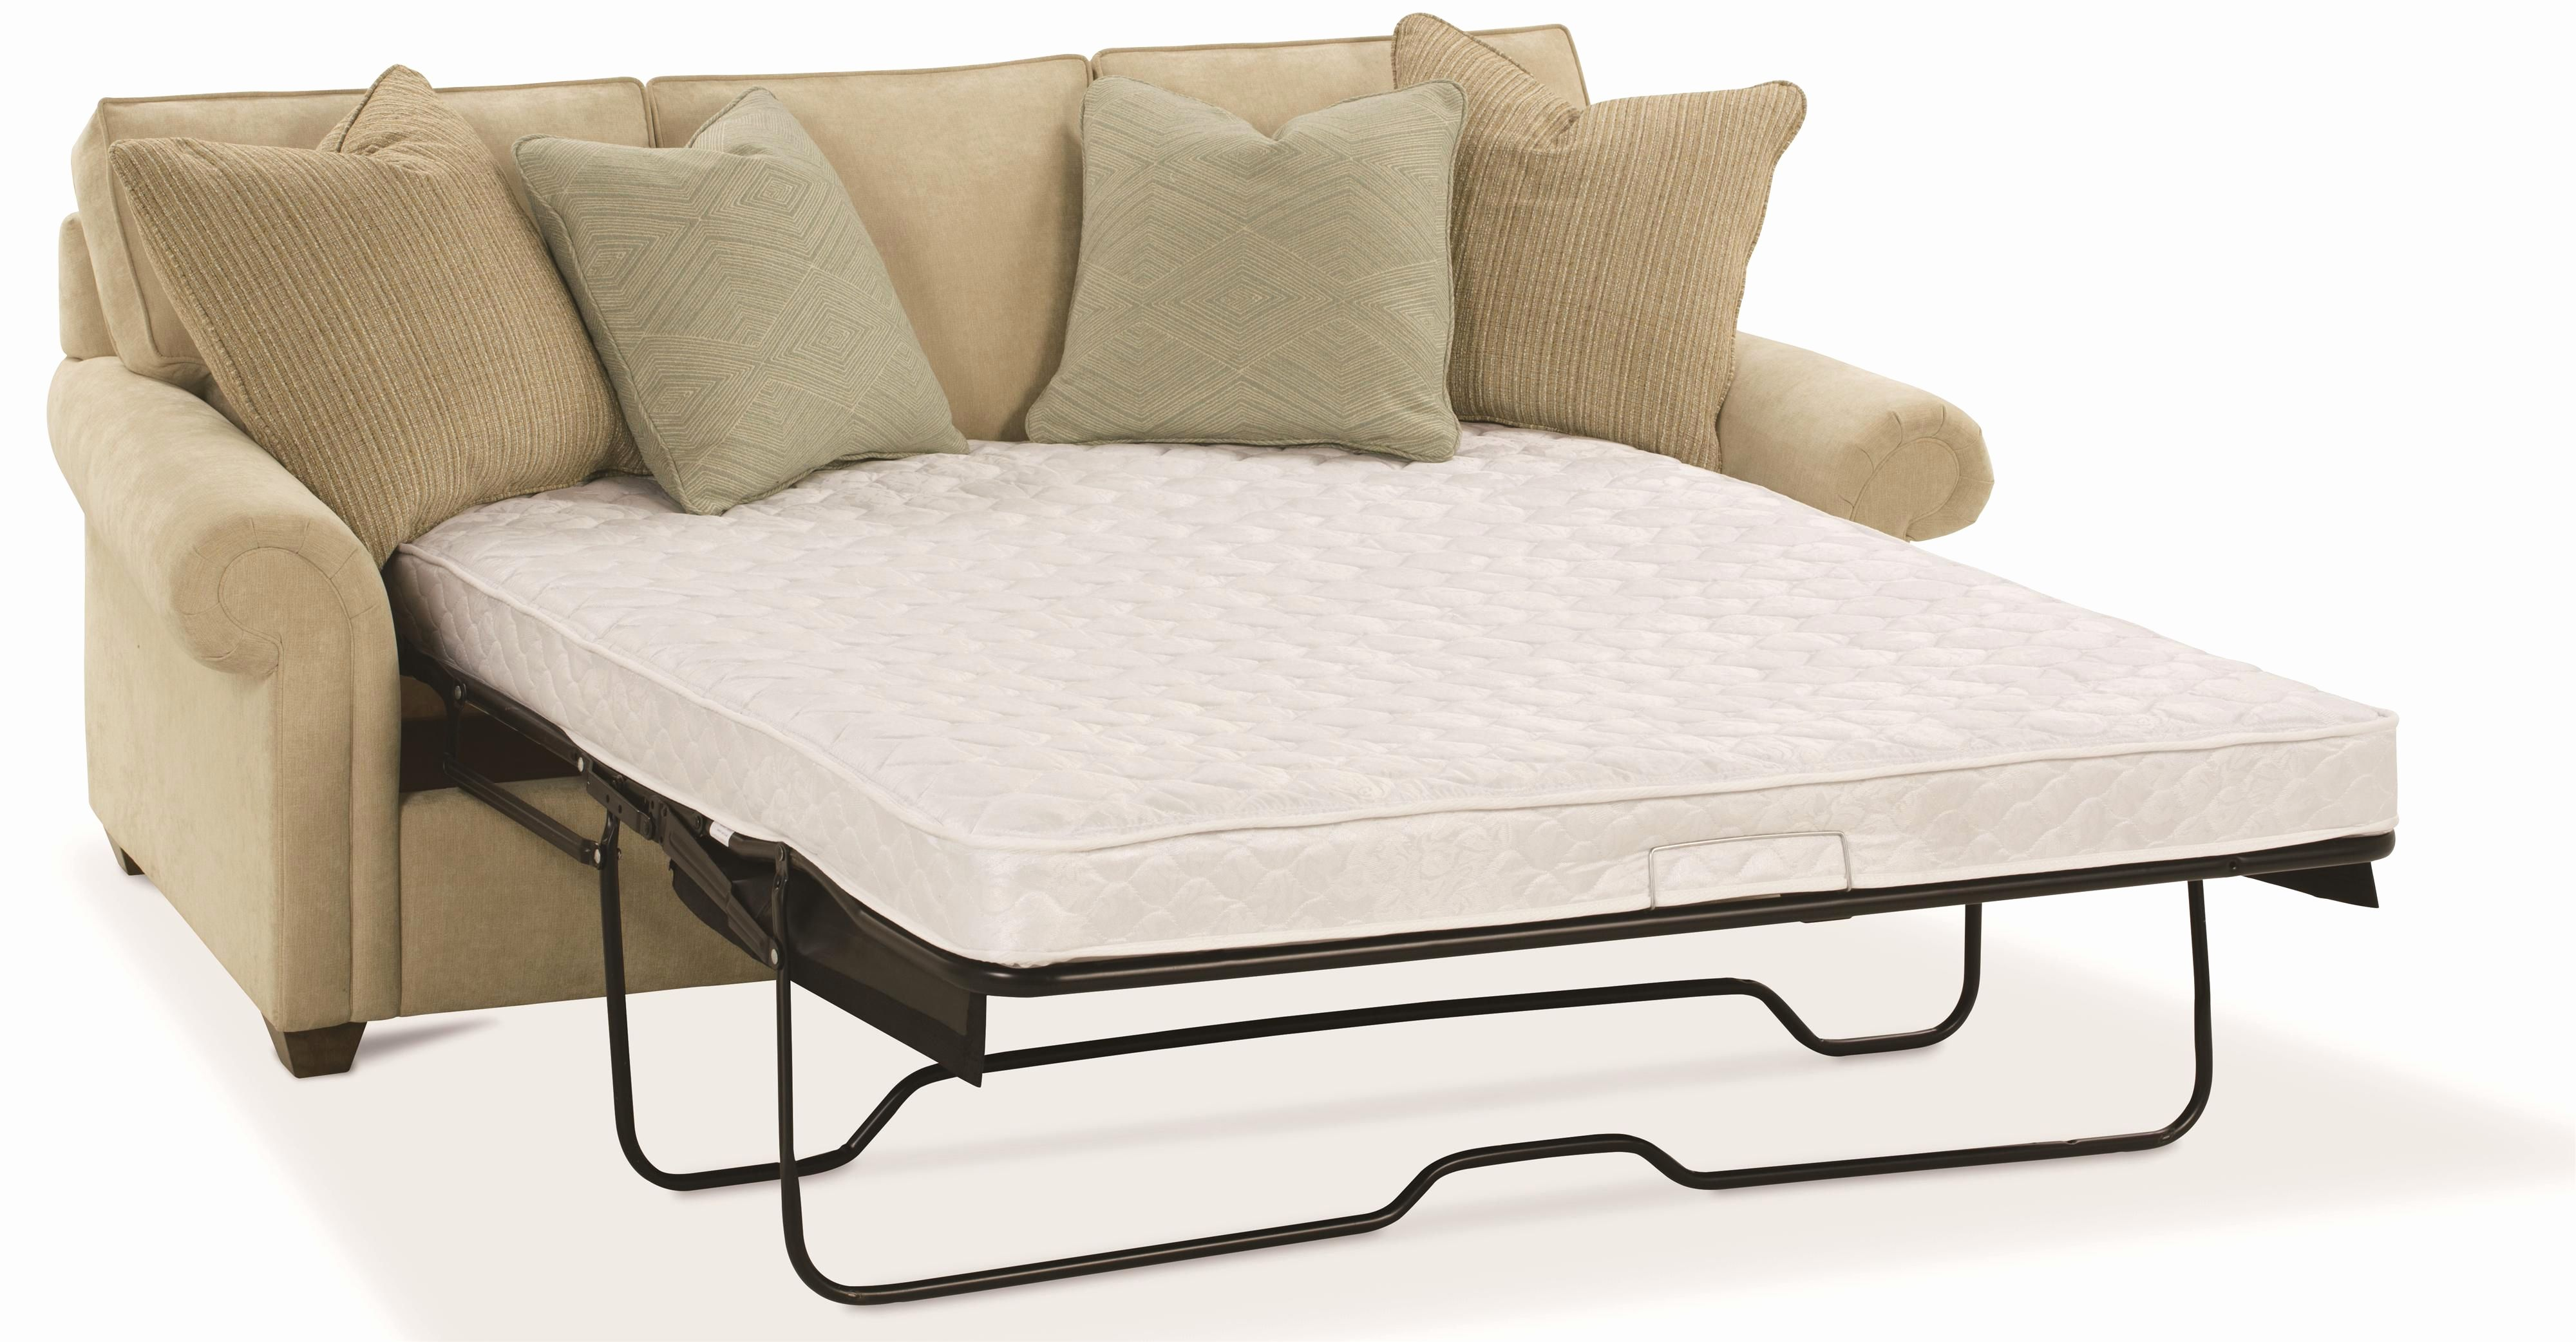 Sofa Bed Topper Queen Unique Sofas For Apartments Sleeper Mattress